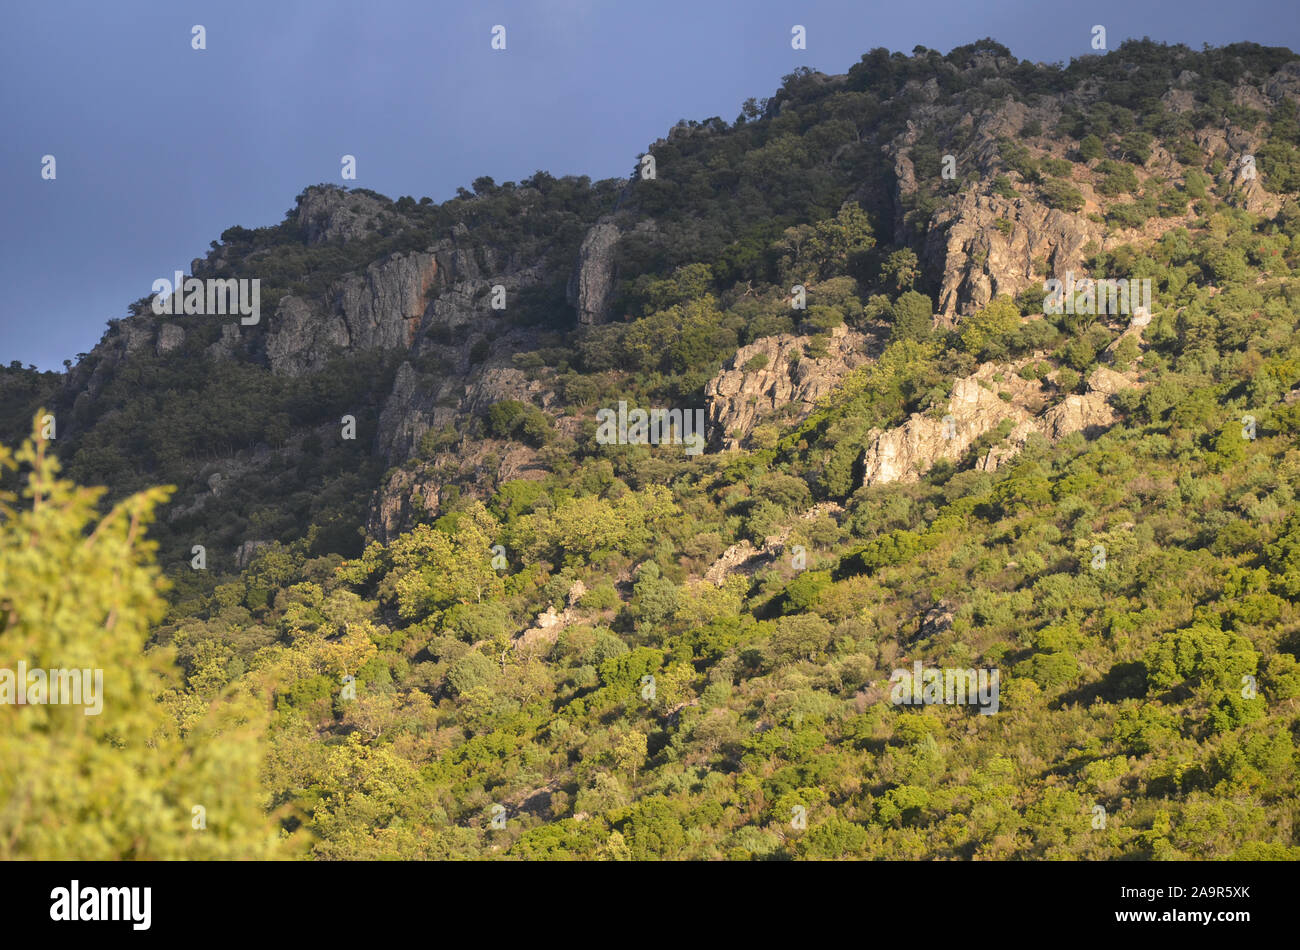 Oak woodlands and Mediterranean scrubland in Sierra Madrona natural park, southern Spain Stock Photo